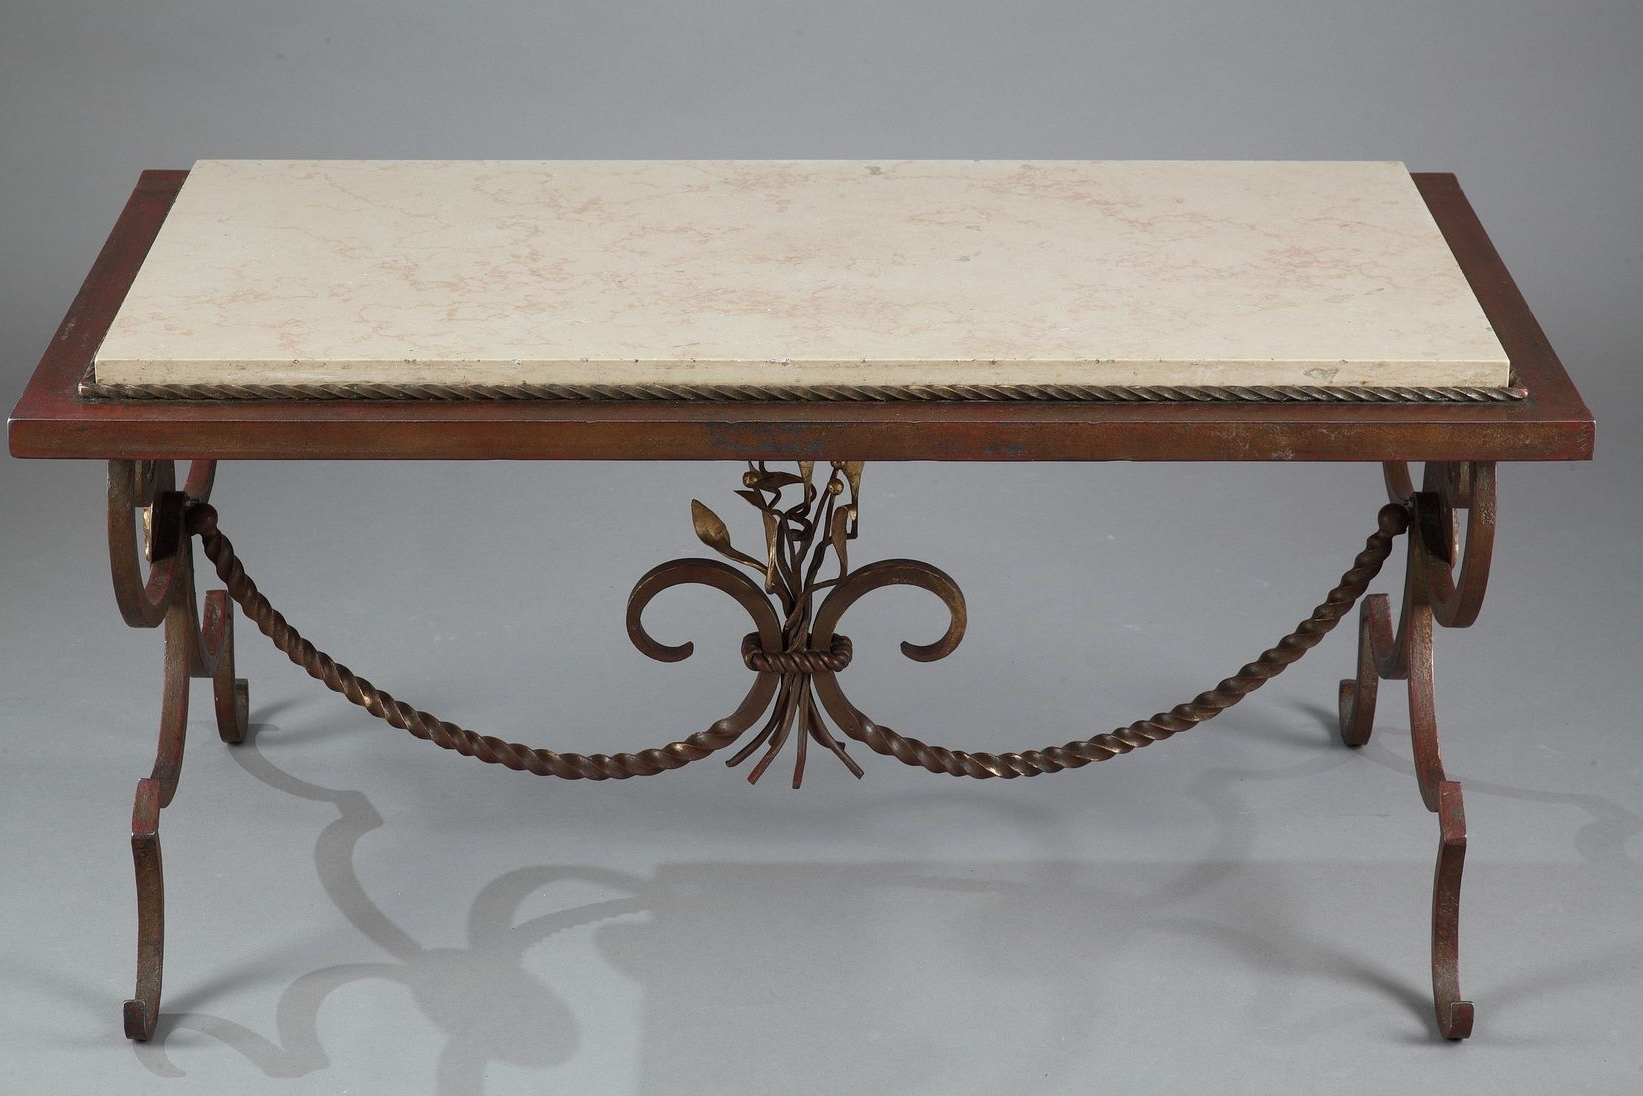 Trendy Iron Marble Coffee Tables For Gilded Wrought Iron & Marble Coffee Table, 1950S For Sale At Pamono (View 16 of 20)